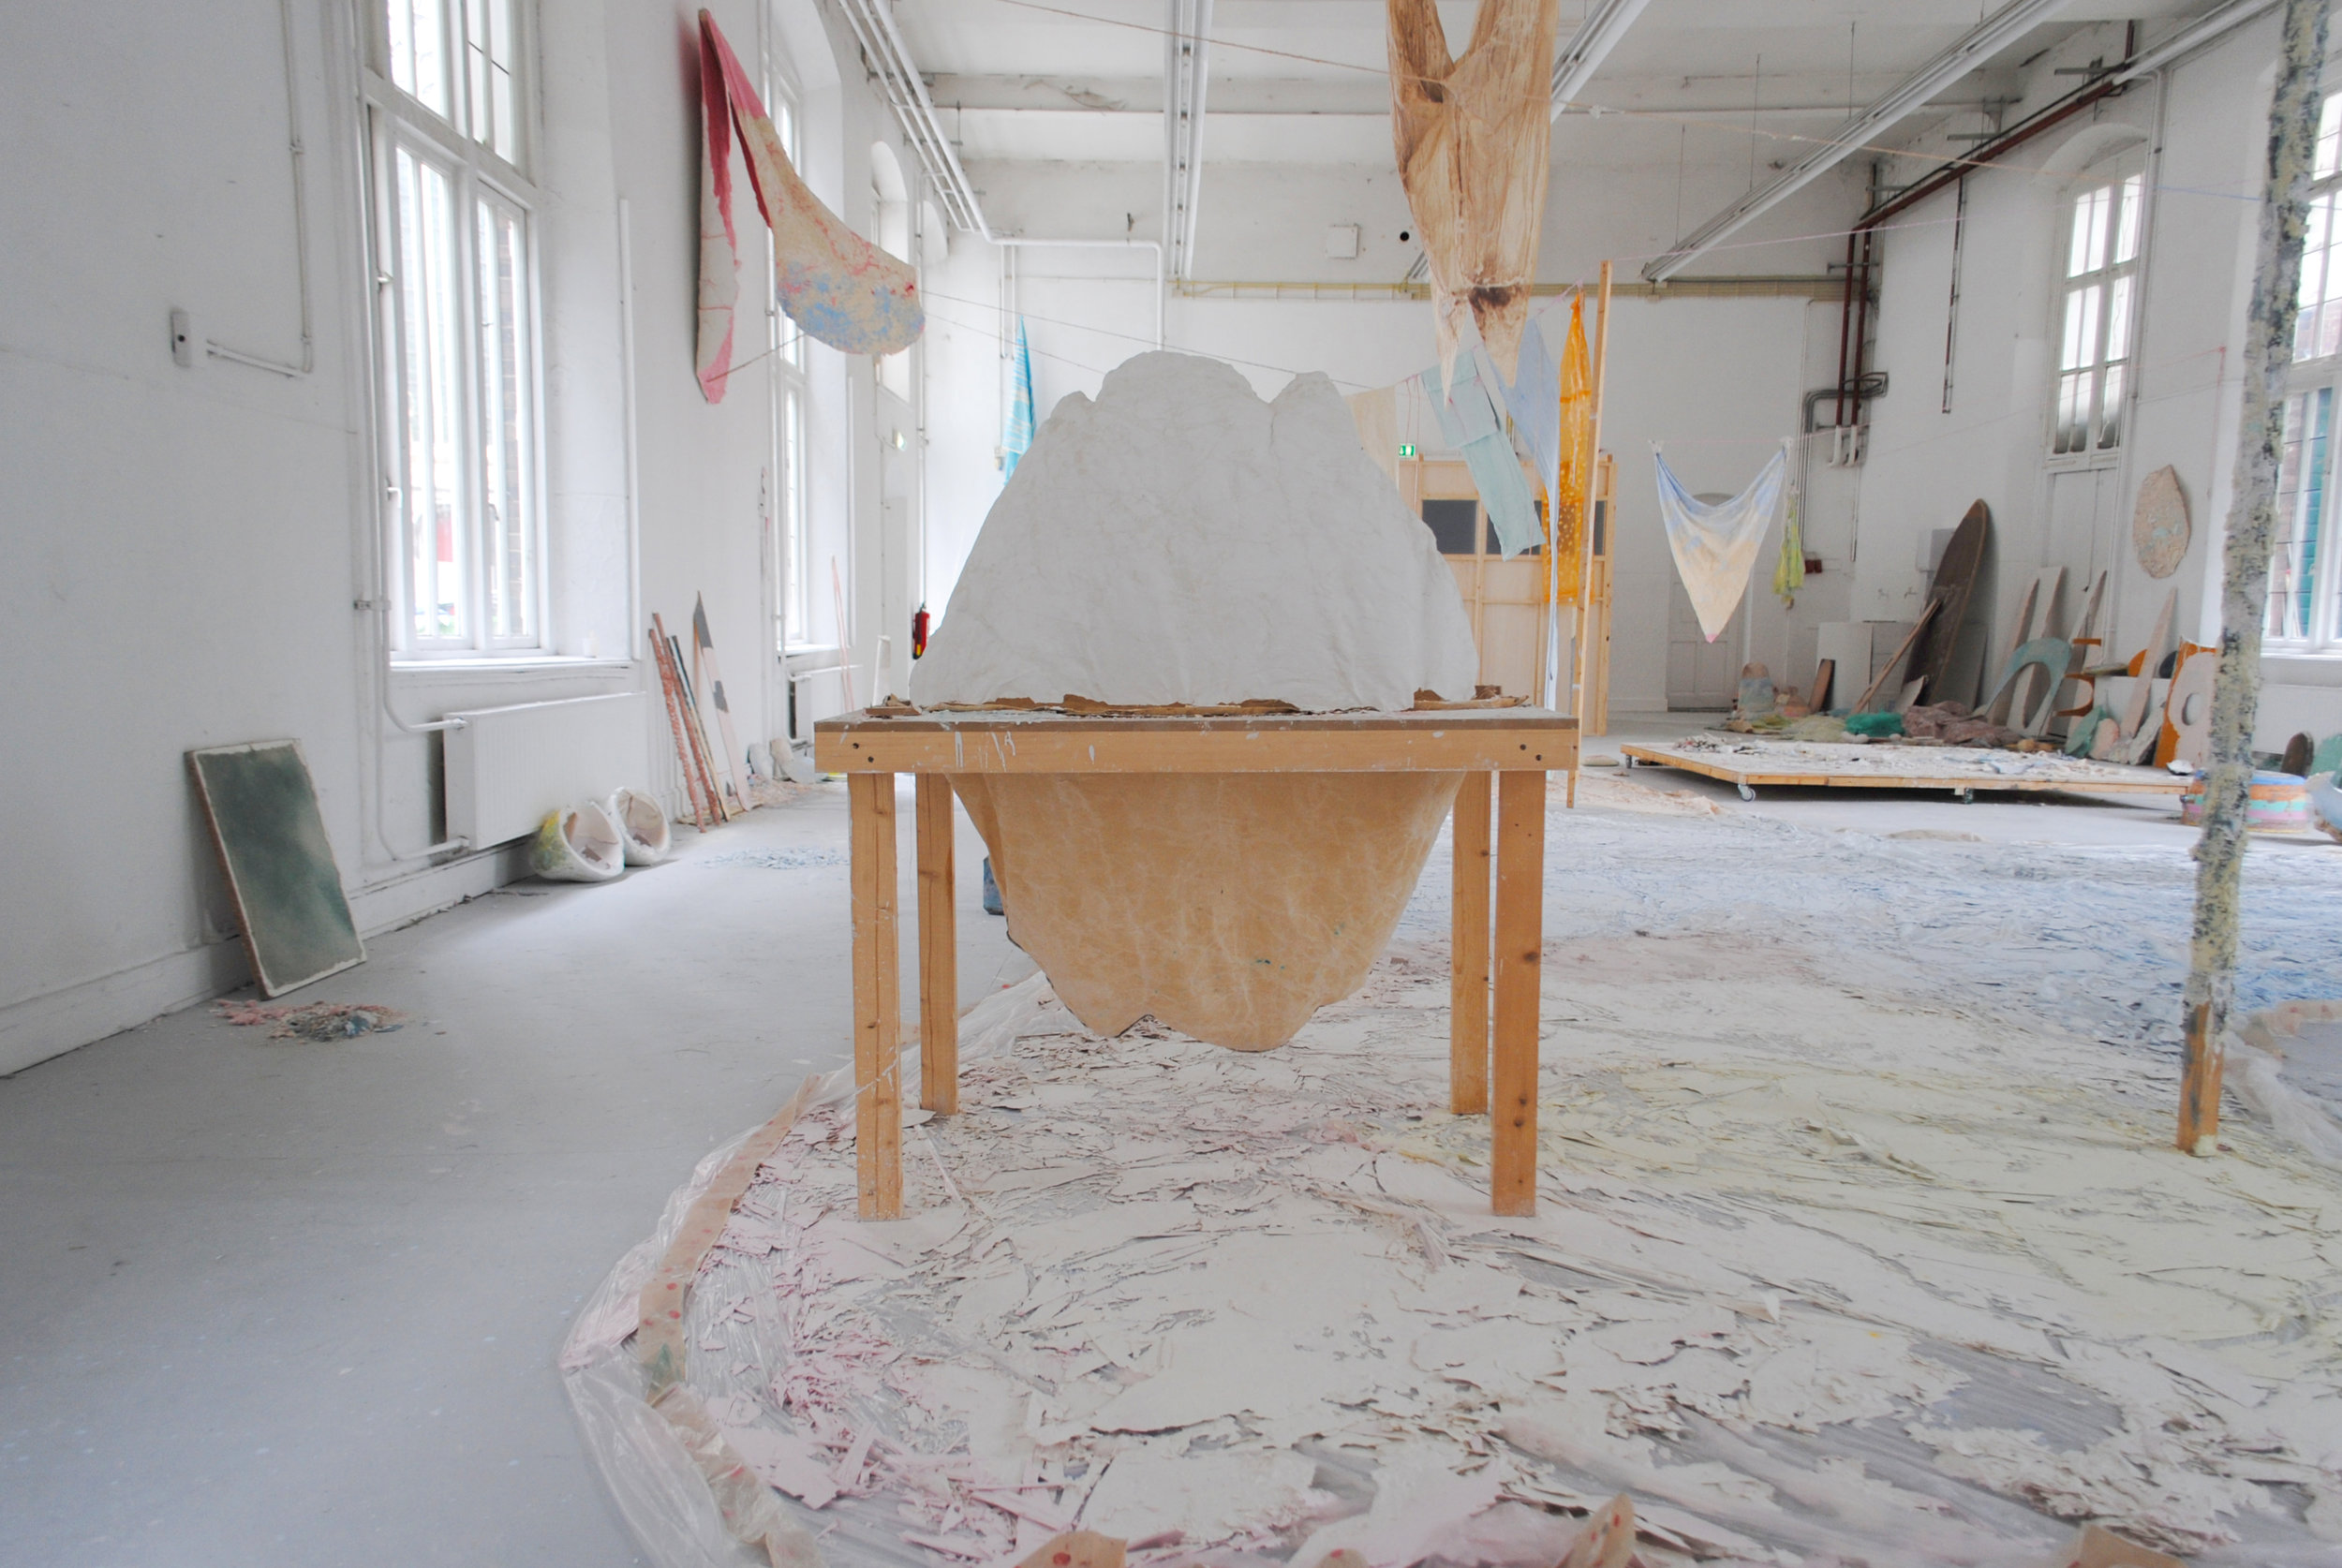 Detail: Molding table, Some things that still need to be said (also about how candy is made) - Colored chalk, textiles, wax, plastics, various paints, wood, 2400 x 1100 cm, graduation show